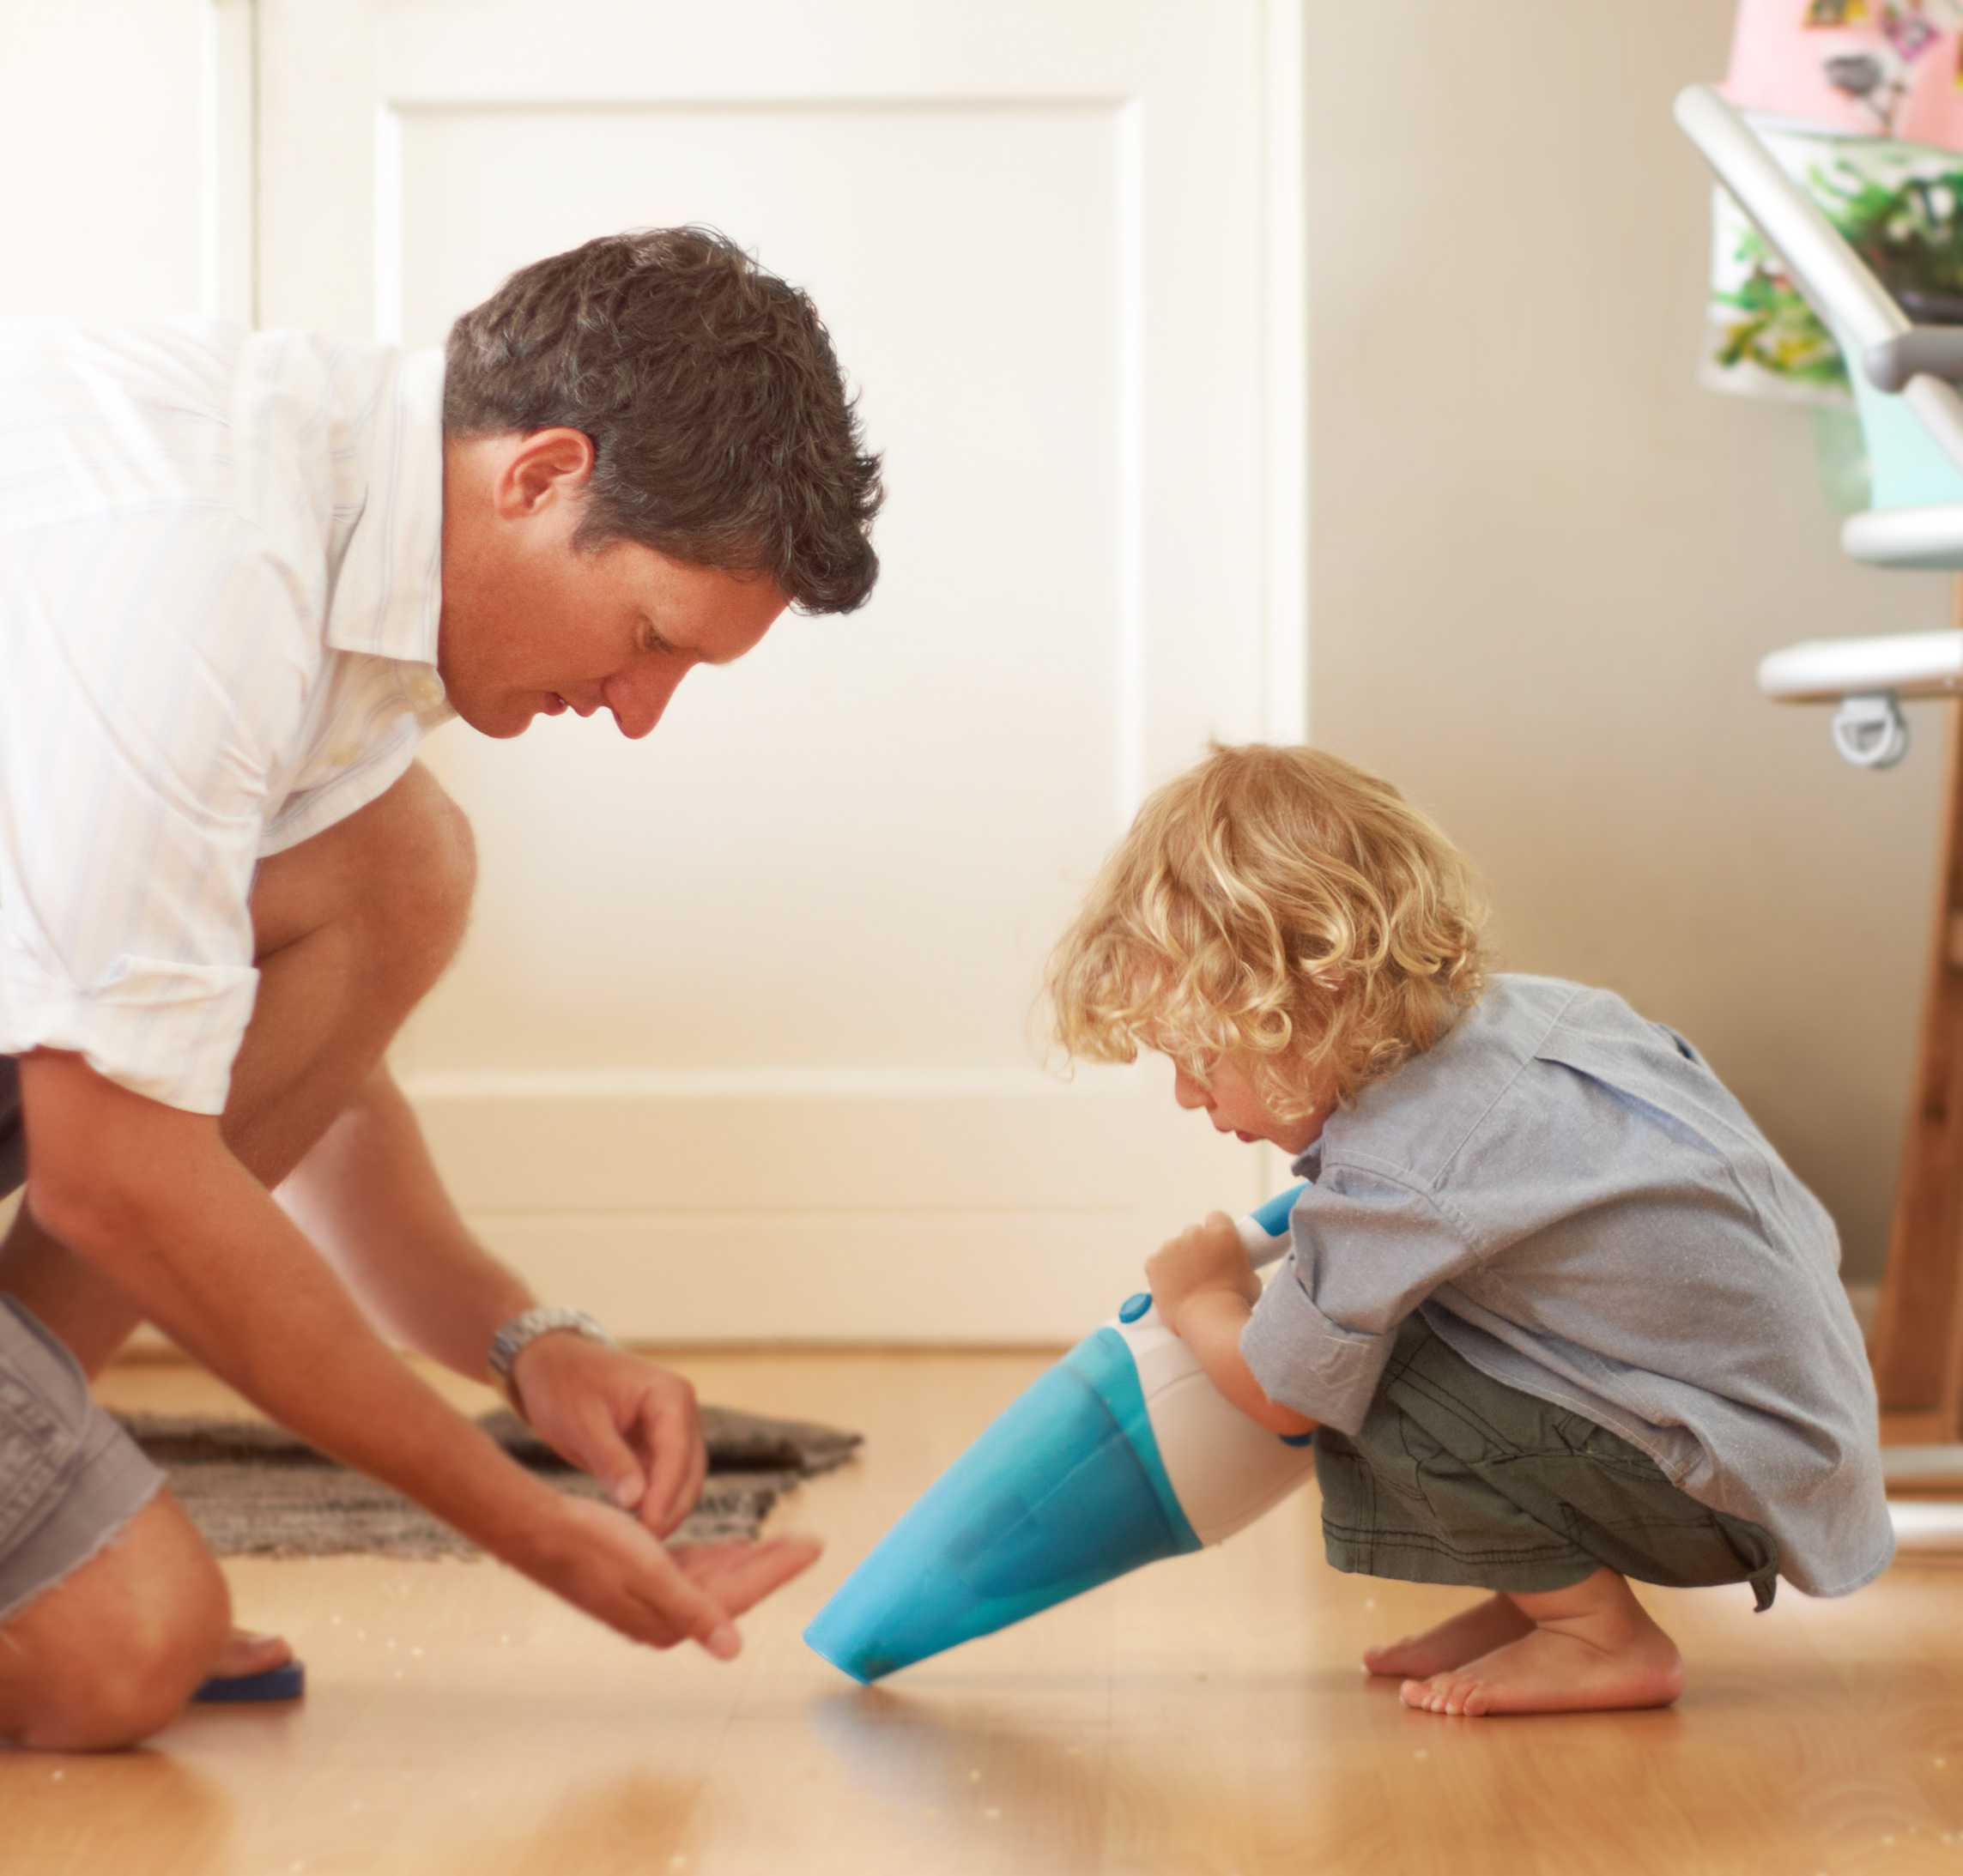 dad and kid using a dustbuster